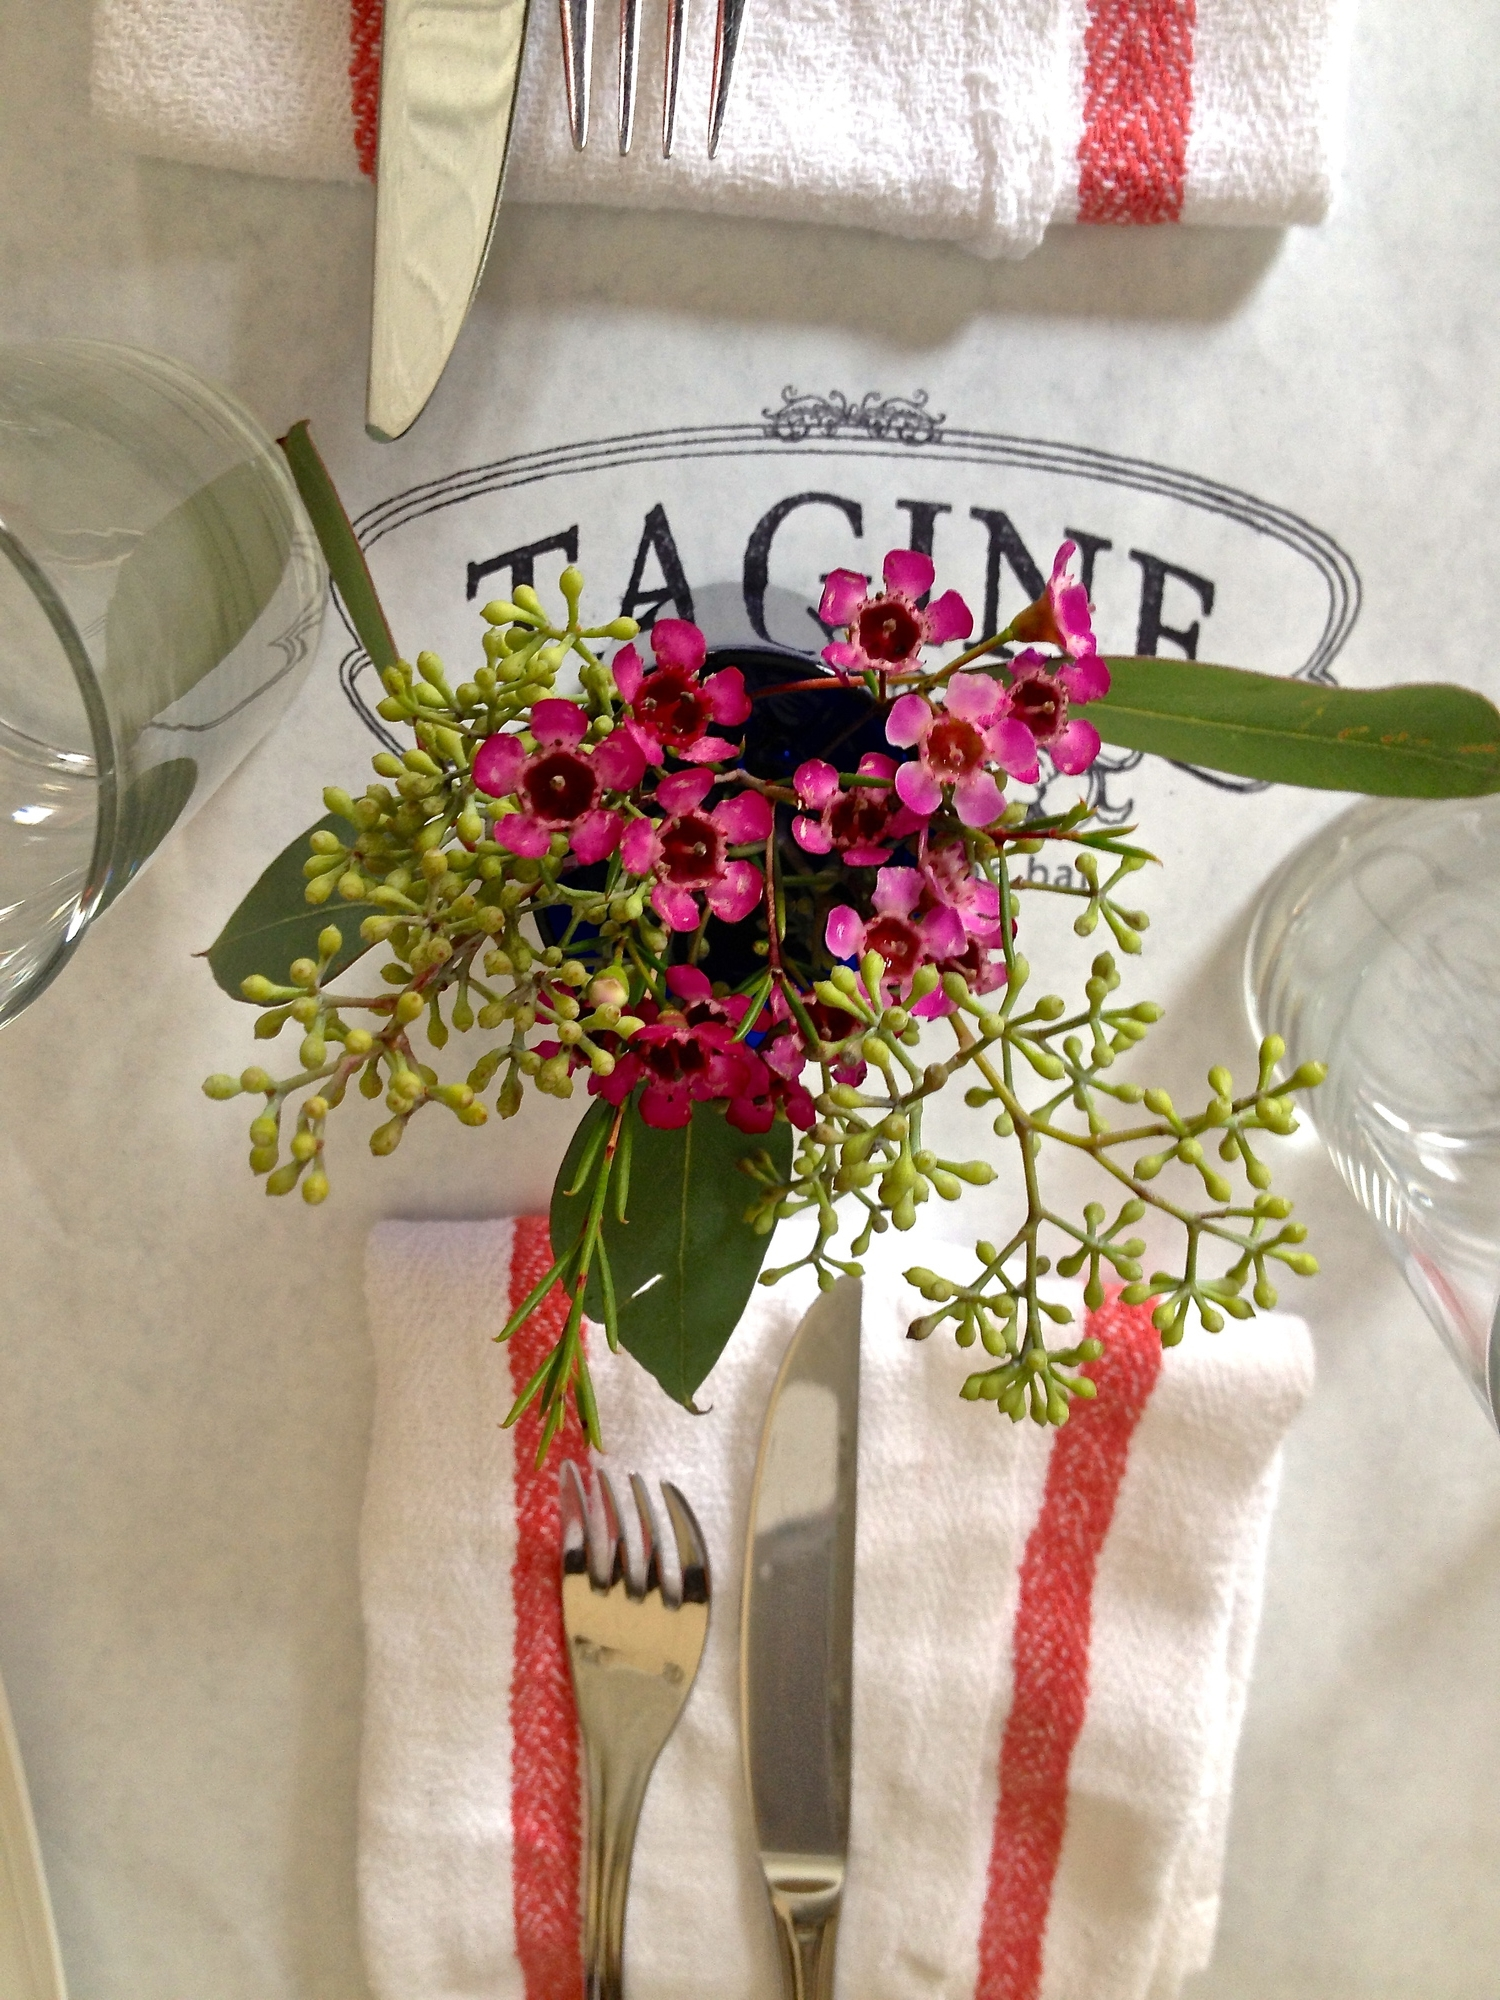 tagine restaurant & wine bar, croton on hudson, ny